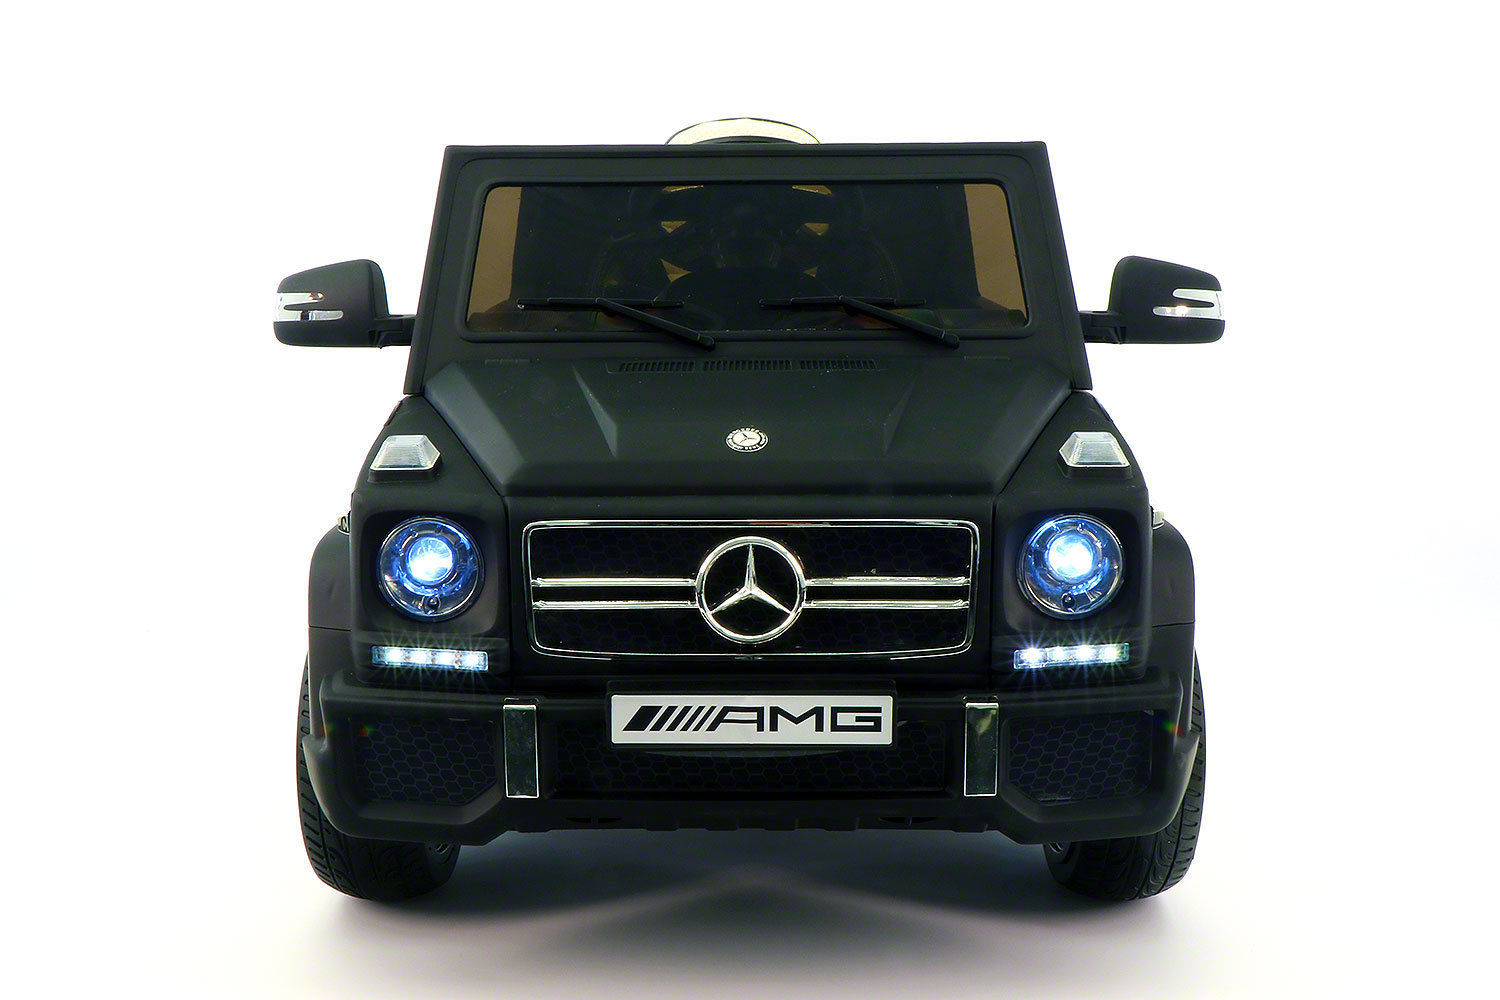 Mercedes benz g65 amg powered ride on toy car with 12v bat for Mercedes benz toy car ride on